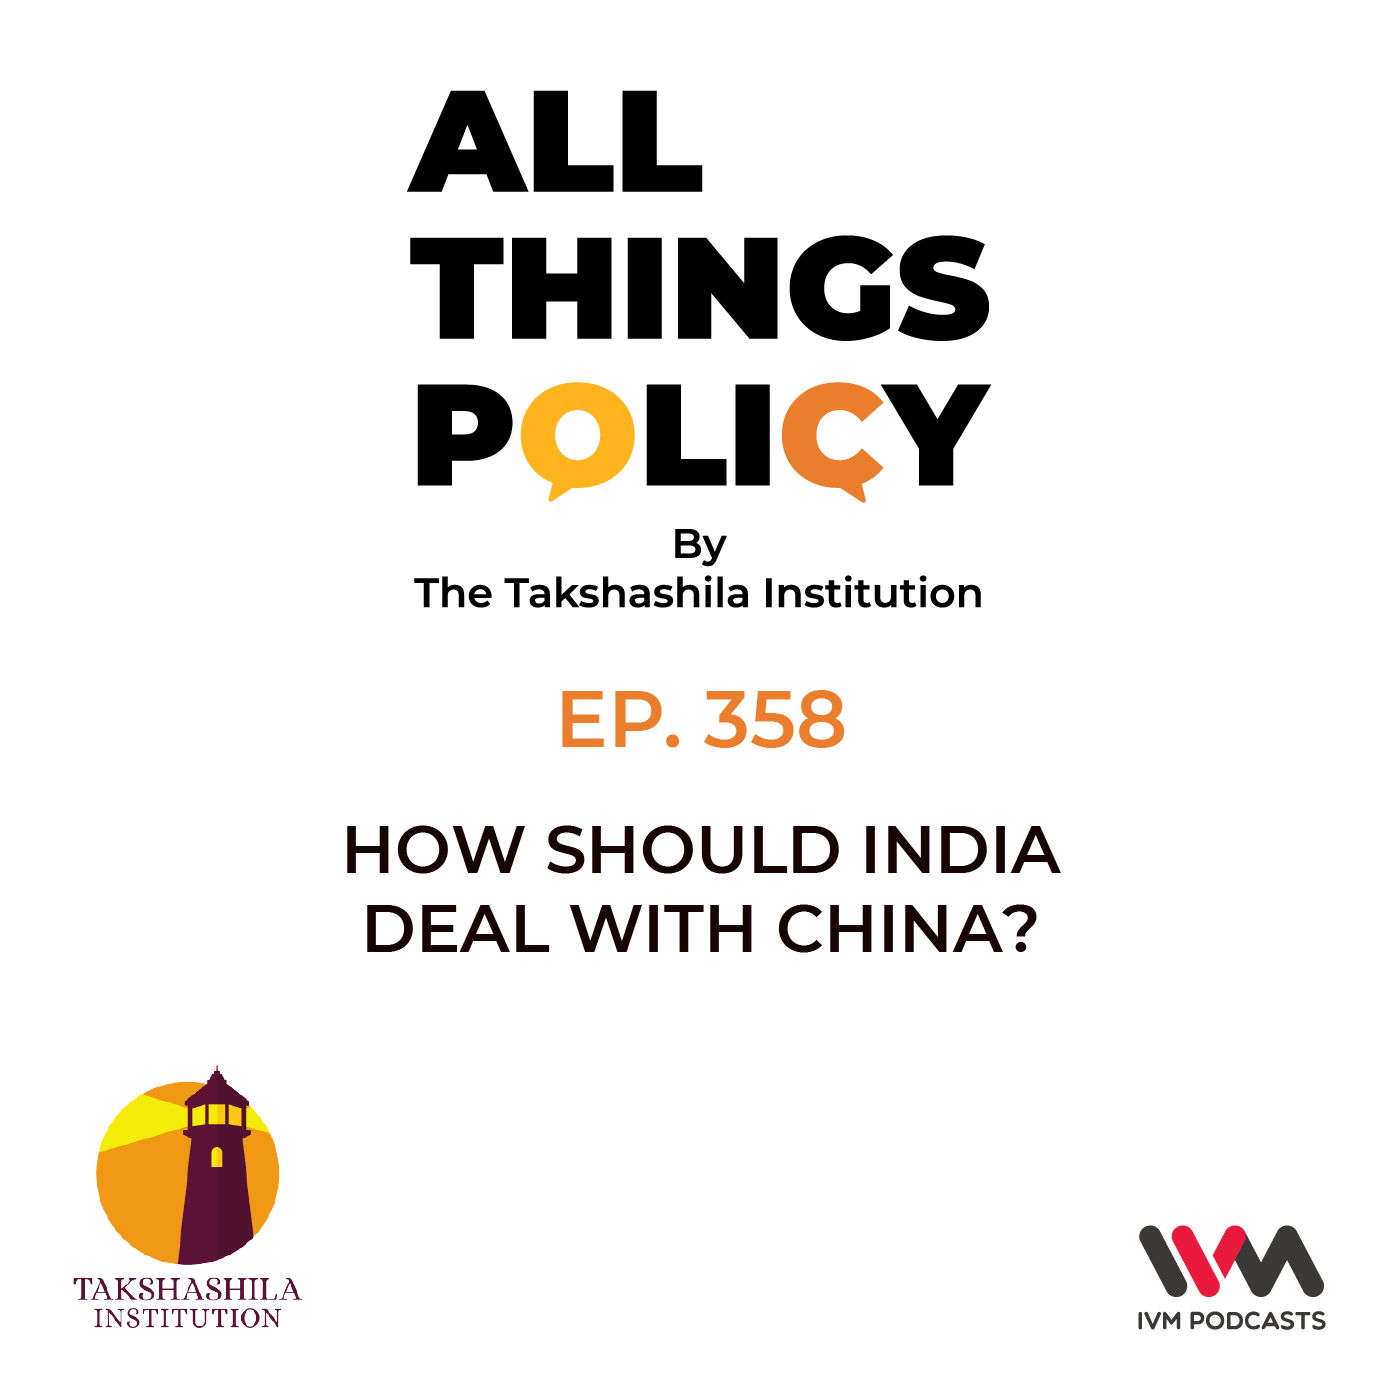 Ep. 358: How Should India Deal With China?